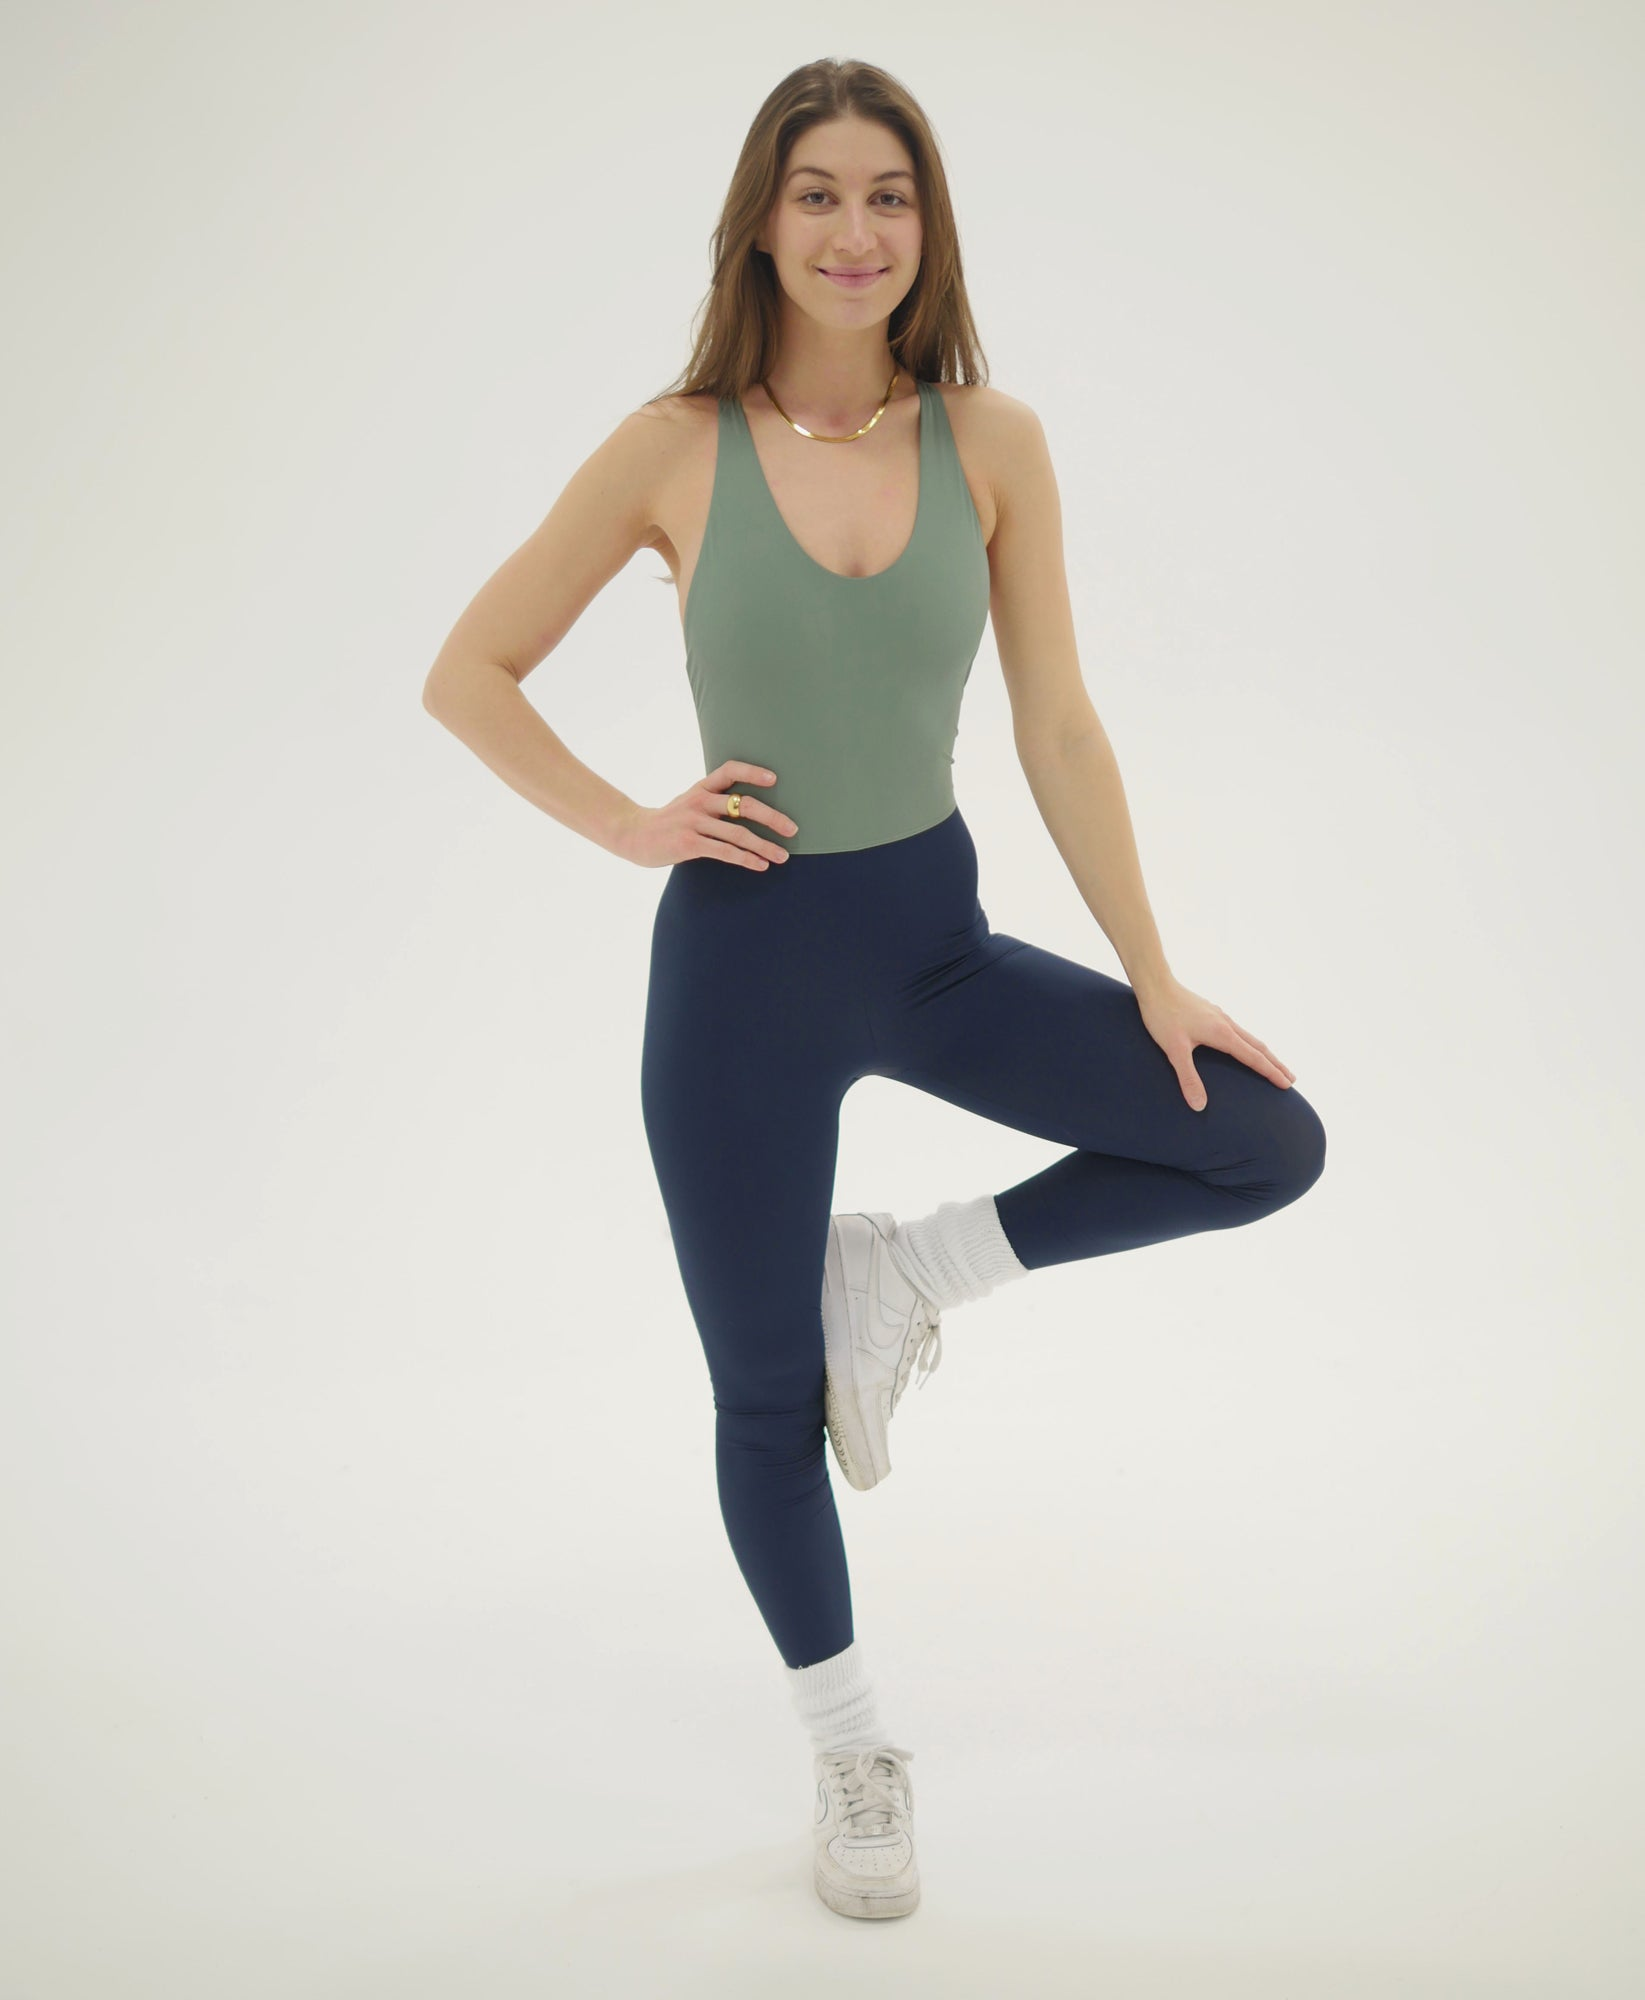 Wear One's At Liberty Unitard in Sage and Navy on Model Full Front View